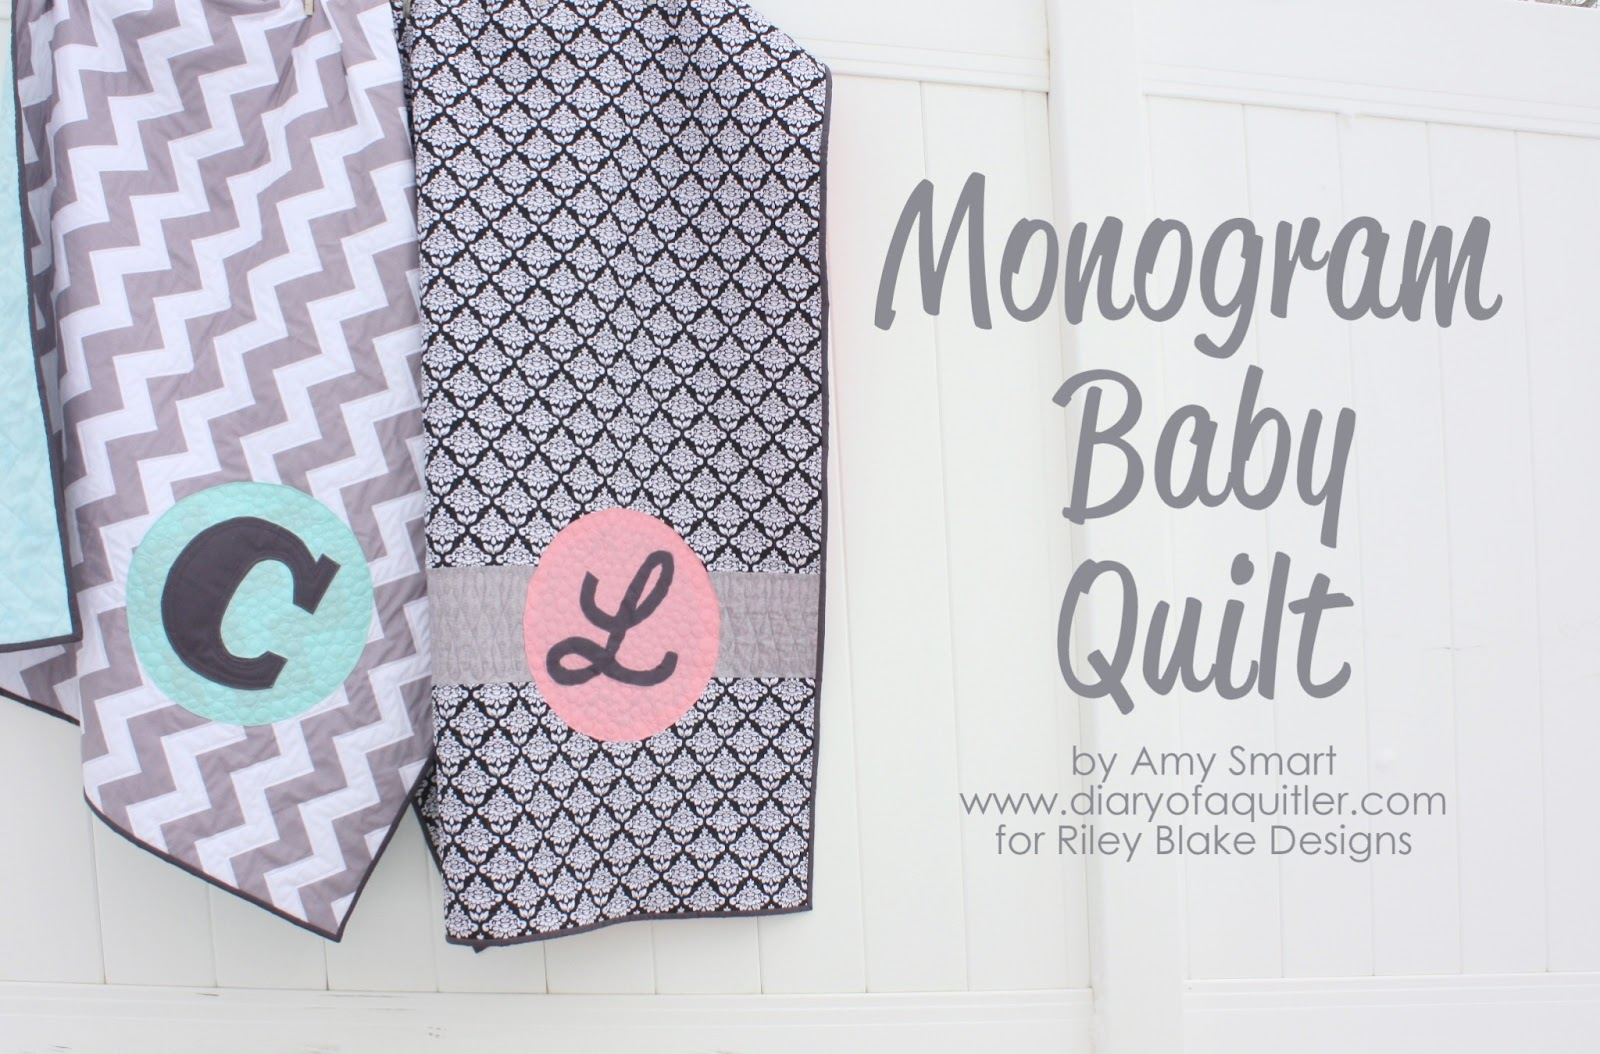 Monogramming Quilts - Kitchen Layout and Decorating Ideas